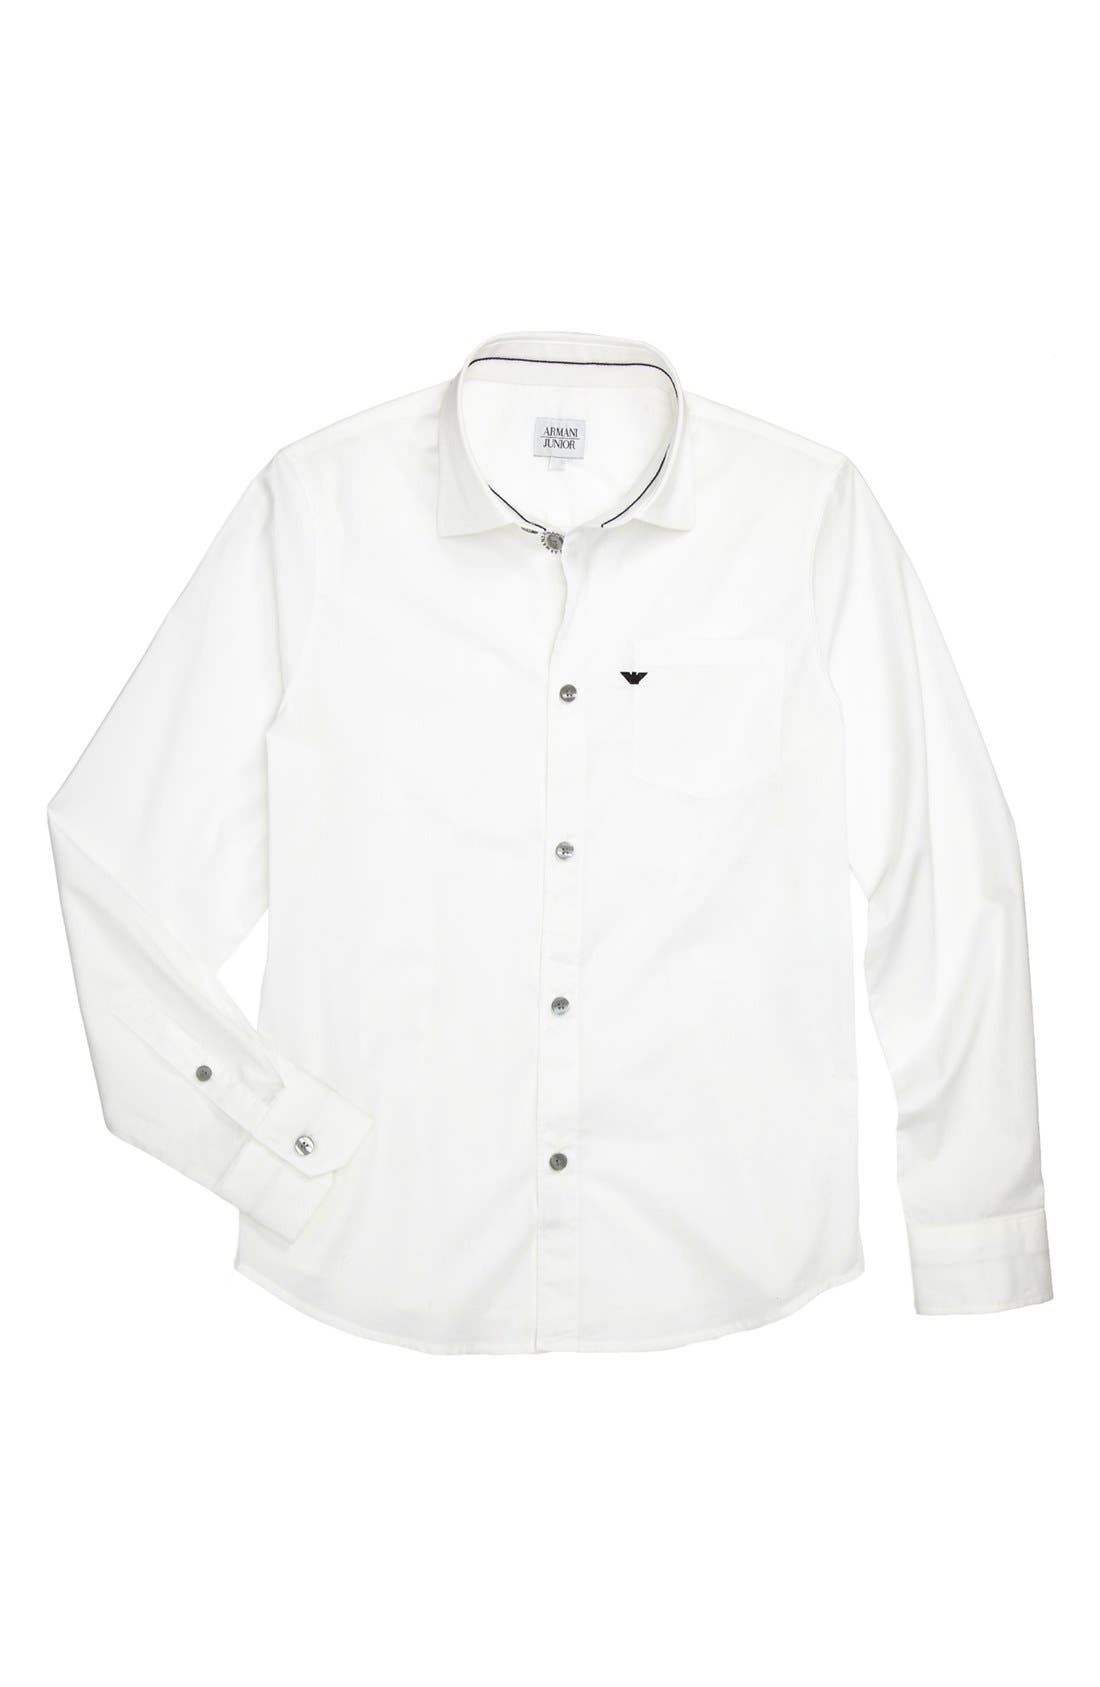 Alternate Image 1 Selected - Armani Junior Sport Shirt (Big Boys)